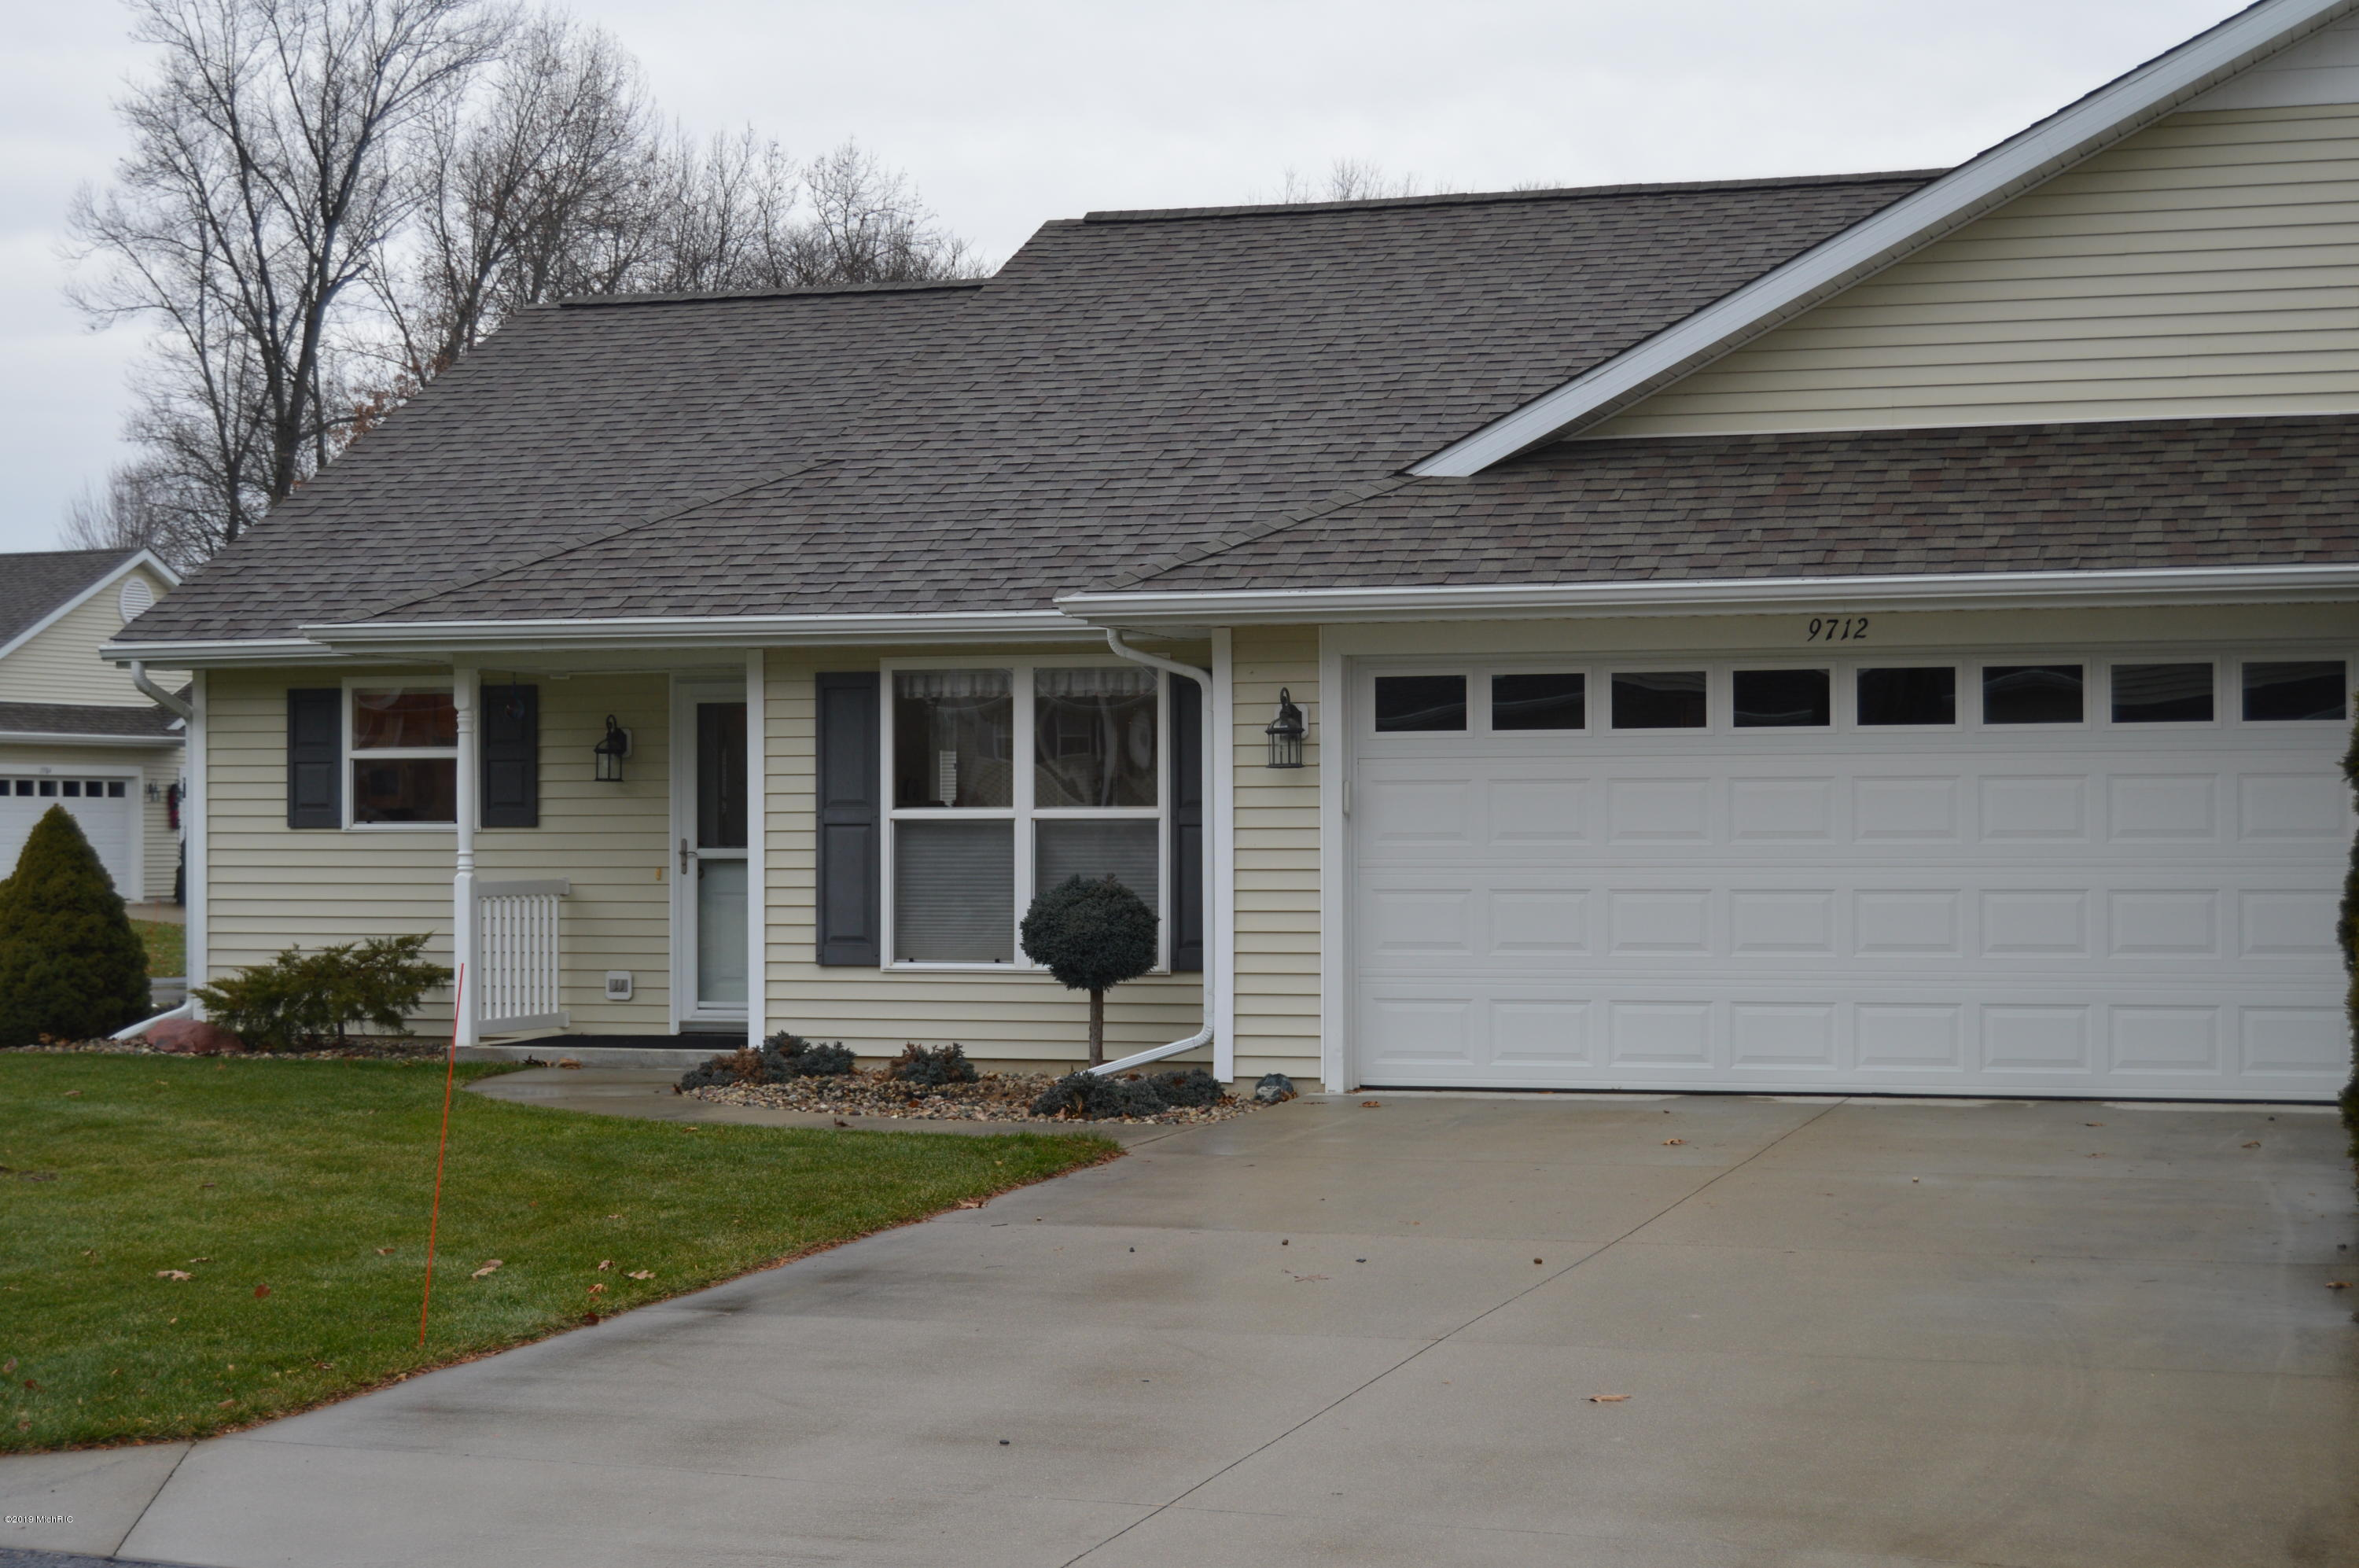 9712 Palmetto Court, Portage, Michigan 49002, 2 Bedrooms Bedrooms, ,2 BathroomsBathrooms,Residential,For Sale,Sterling Oaks South,Palmetto,19001441